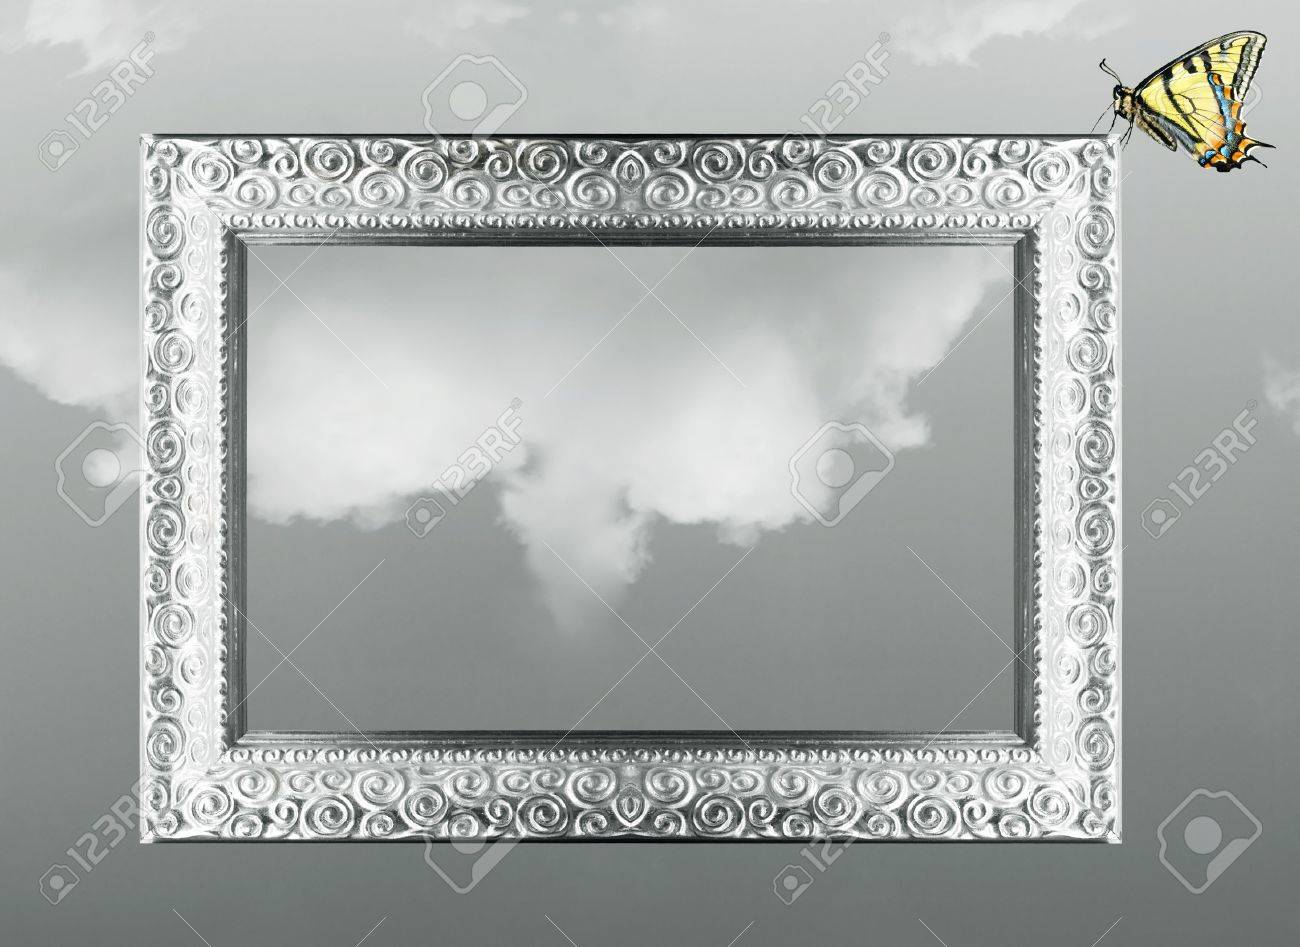 Imaginative Fantasy Background Of A Silver Baroque Frame With ...